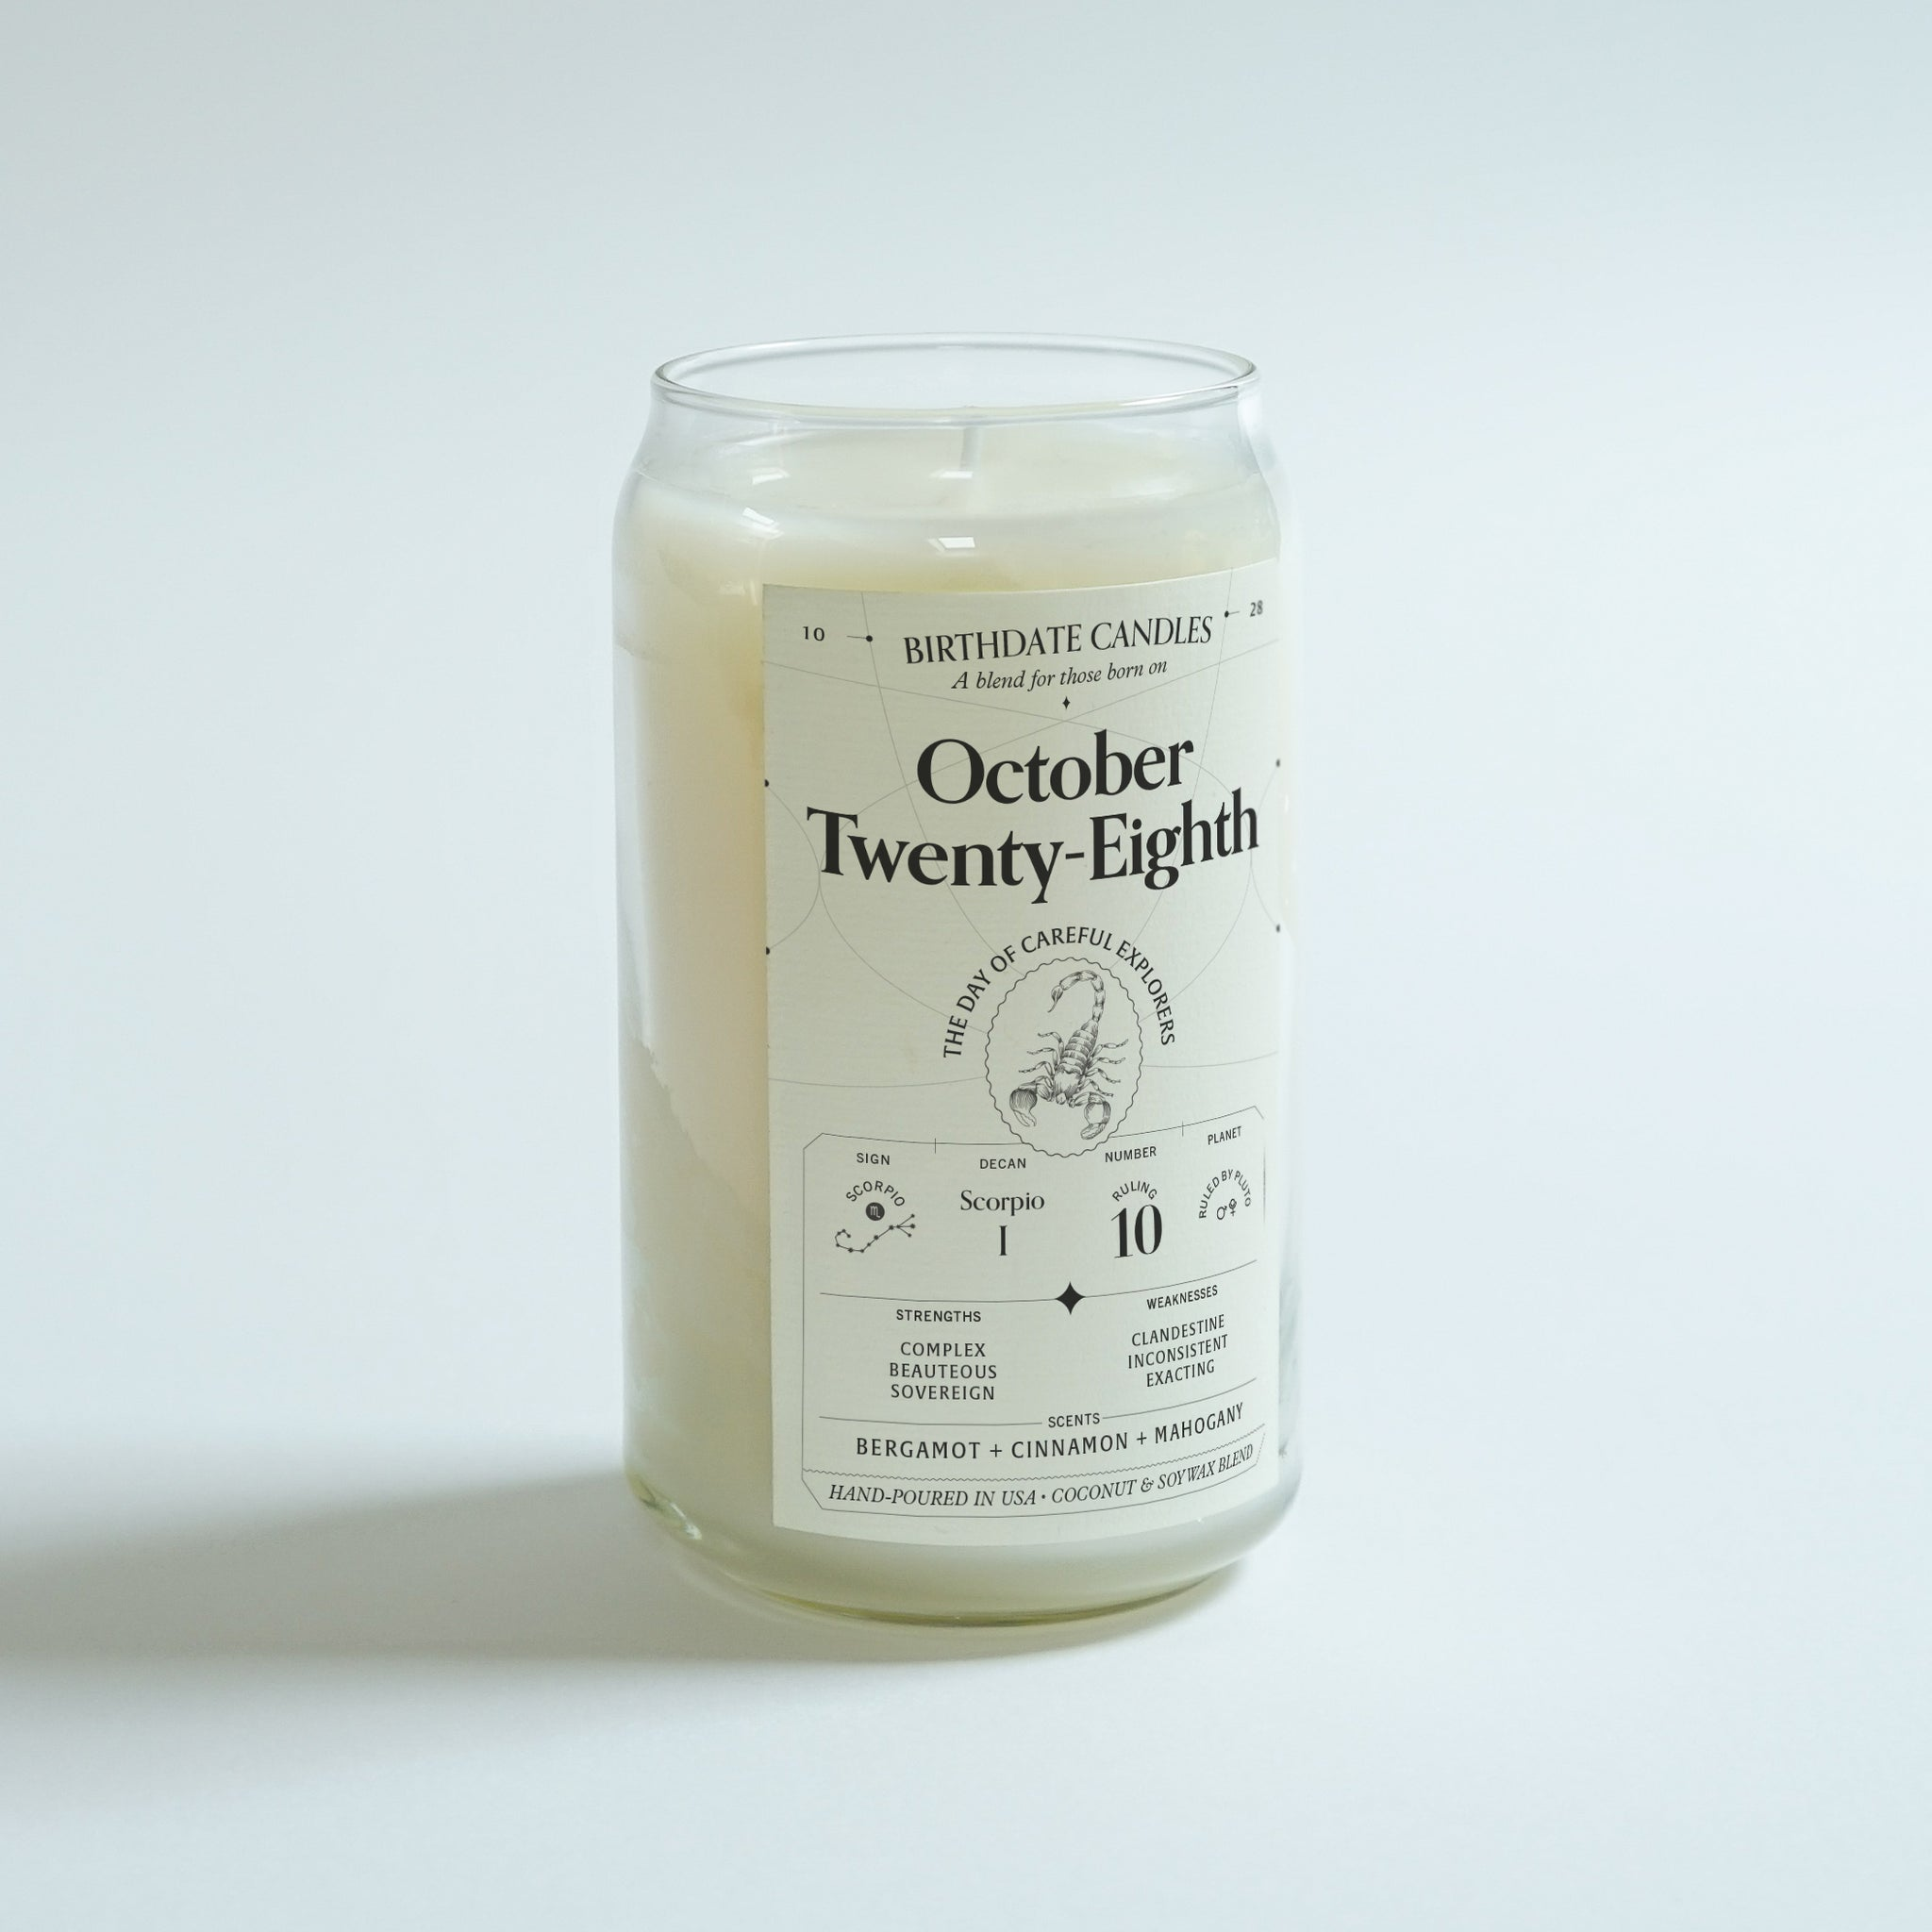 The October Twenty-Eighth Birthday Candle